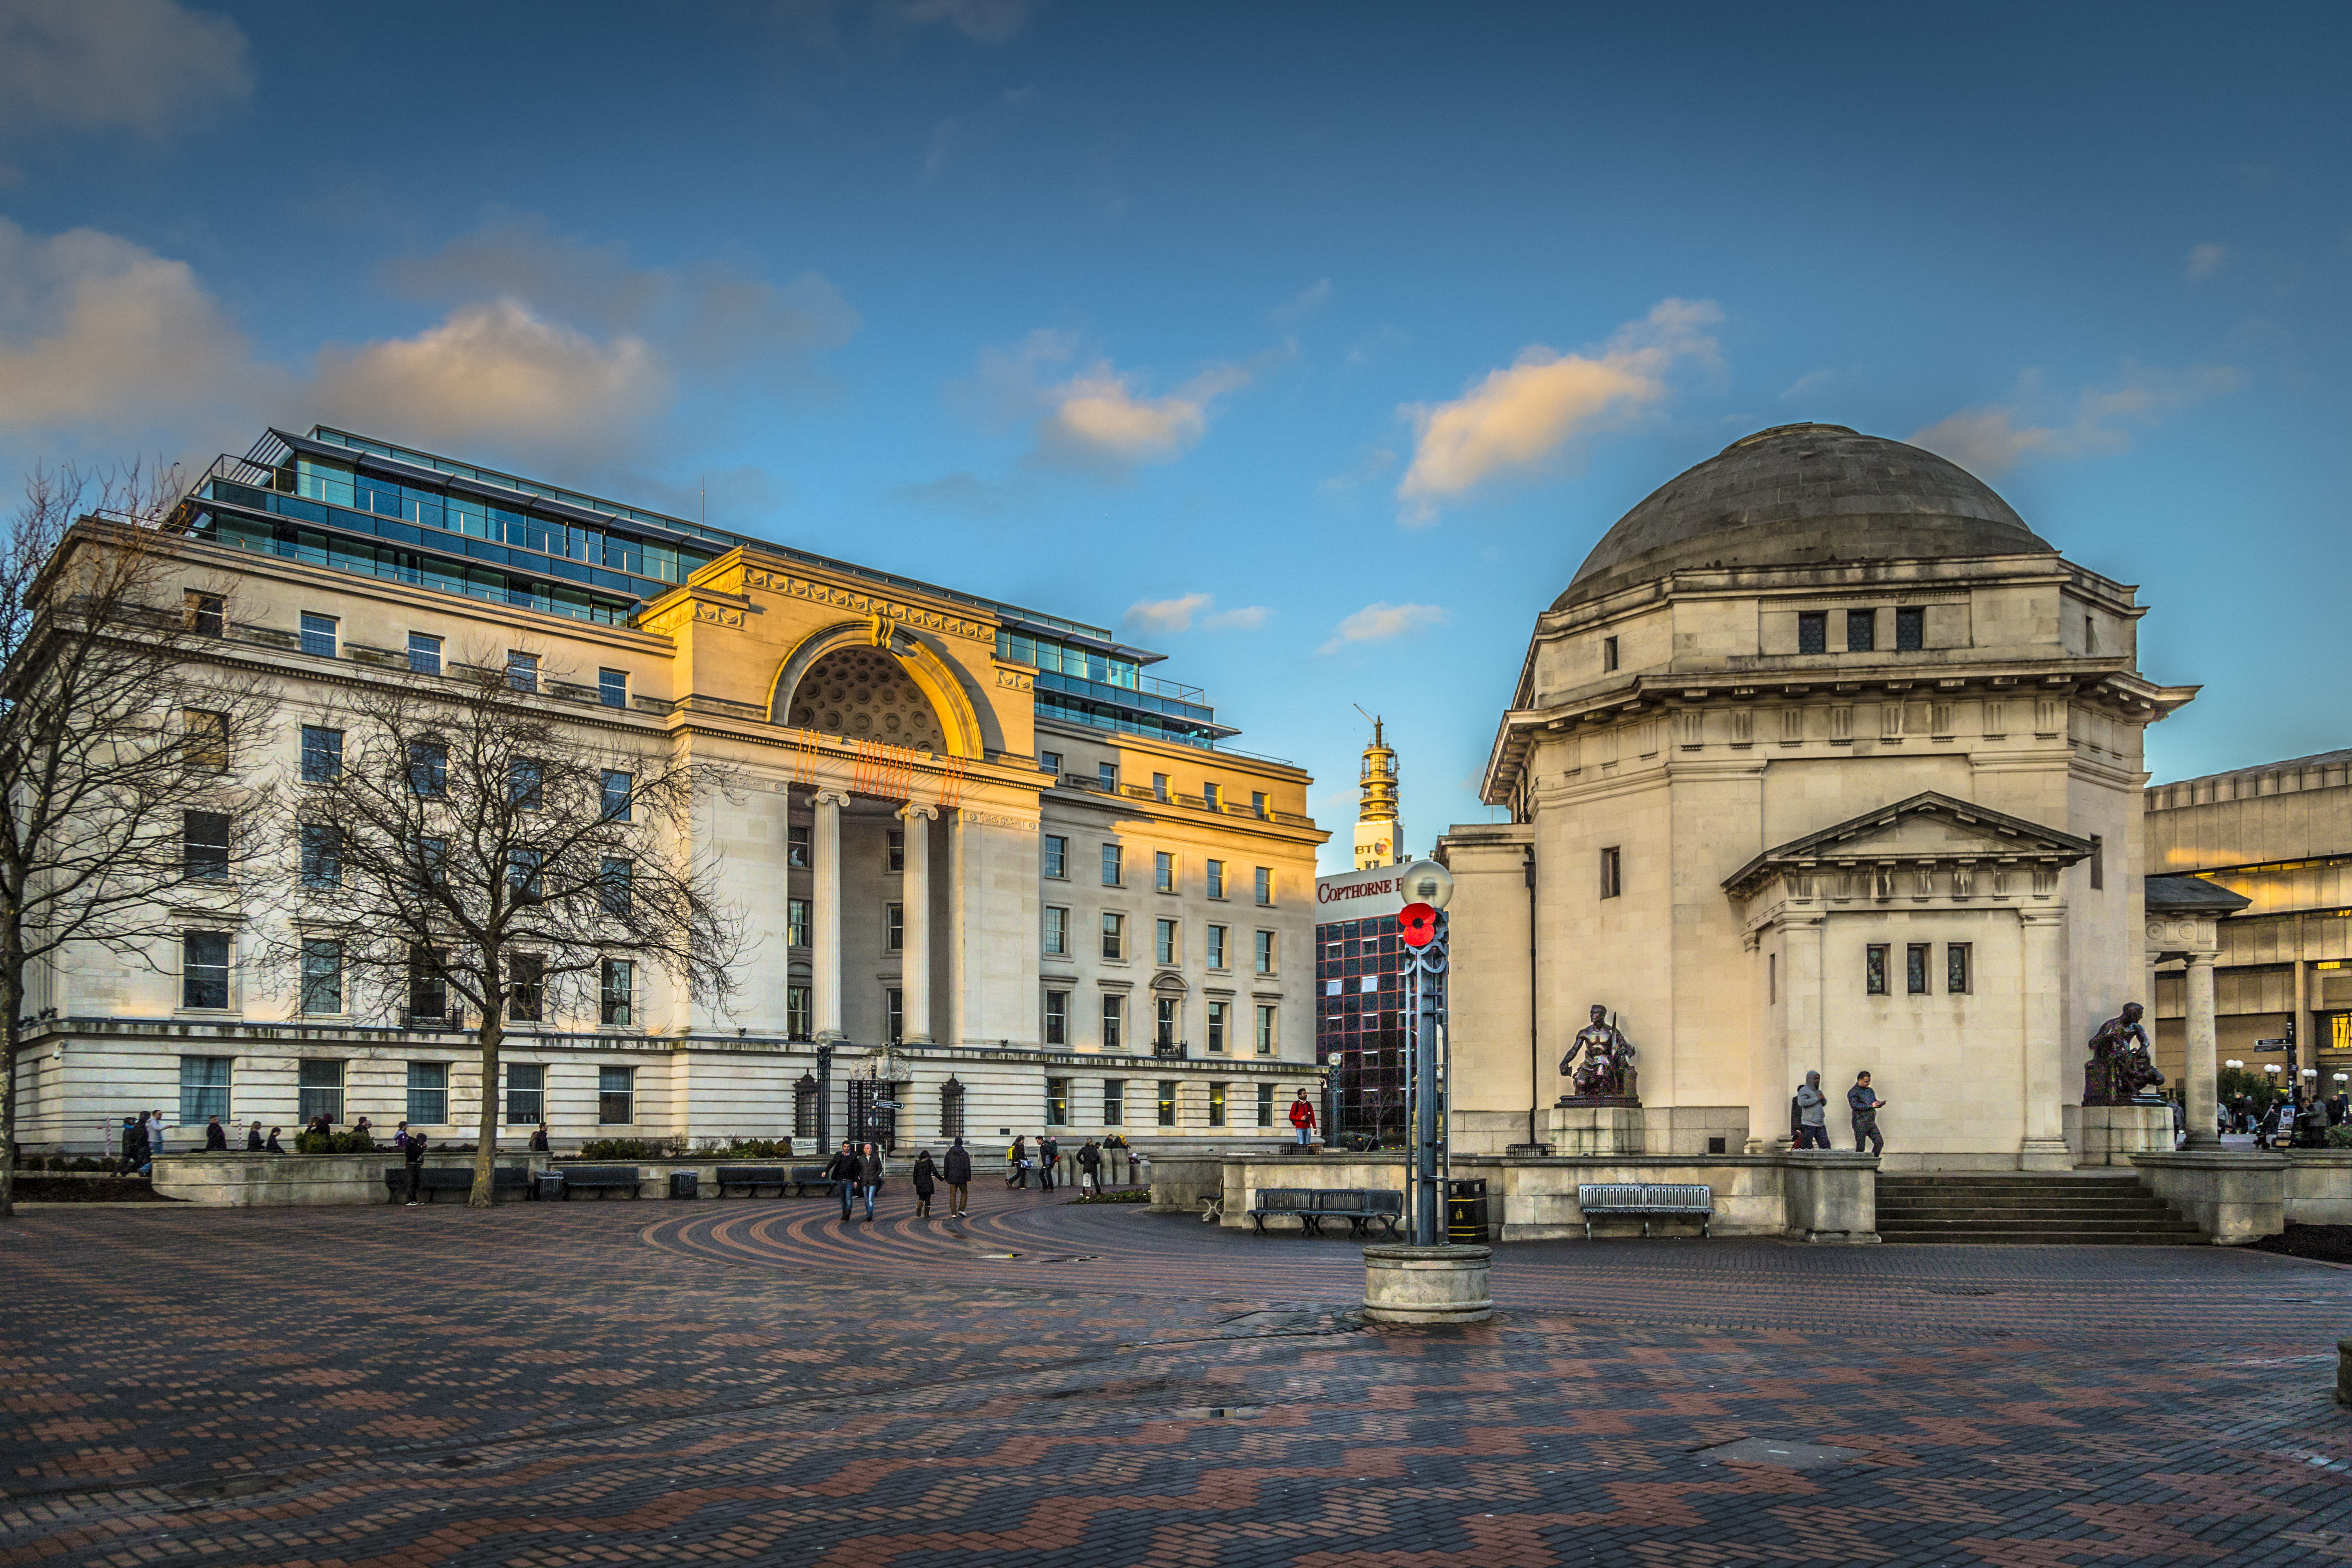 2014 - The Hall of Memory, Centenary Square, Birmingham.